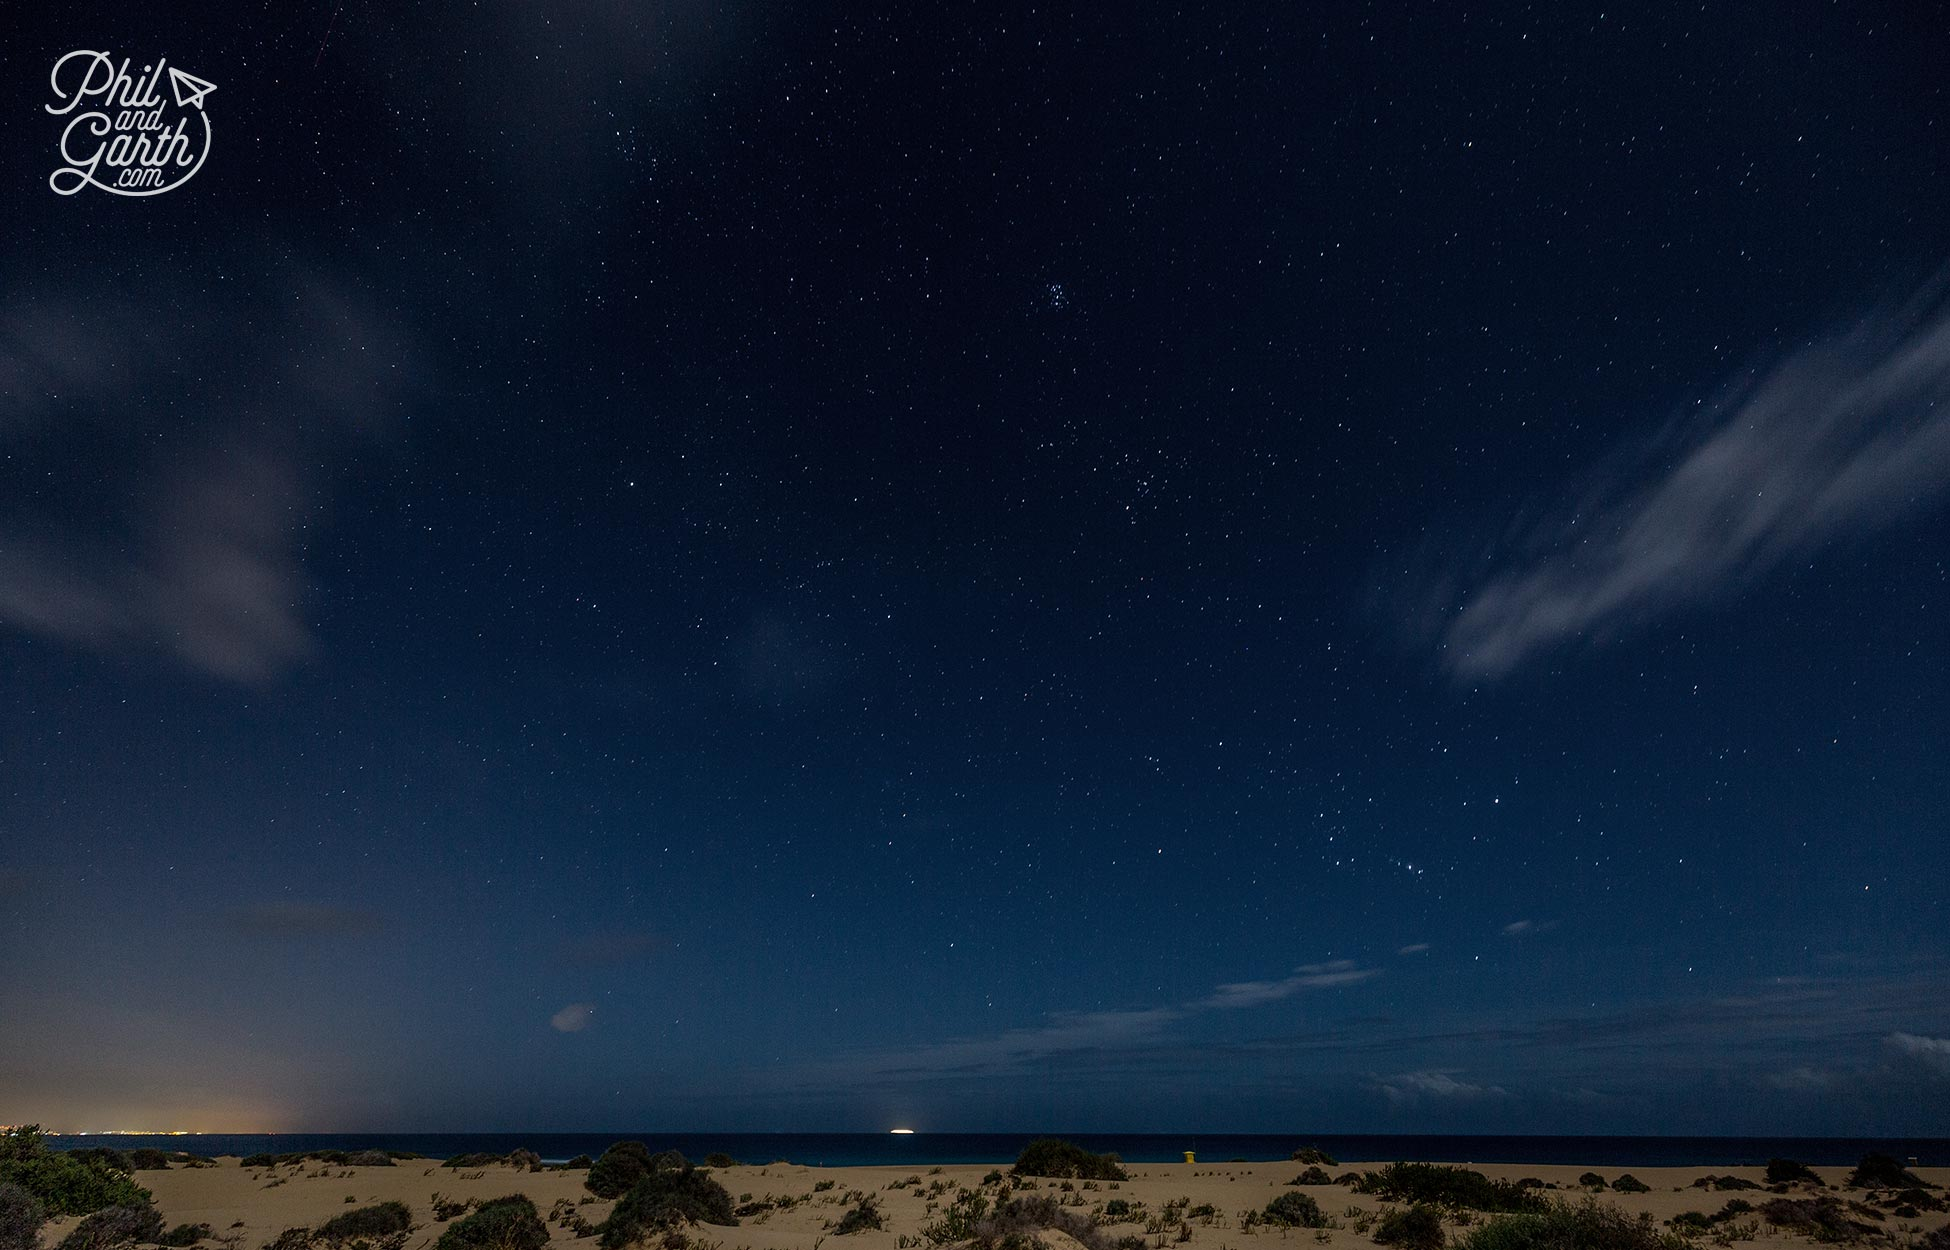 Experimenting taking dark sky photographs over the beach